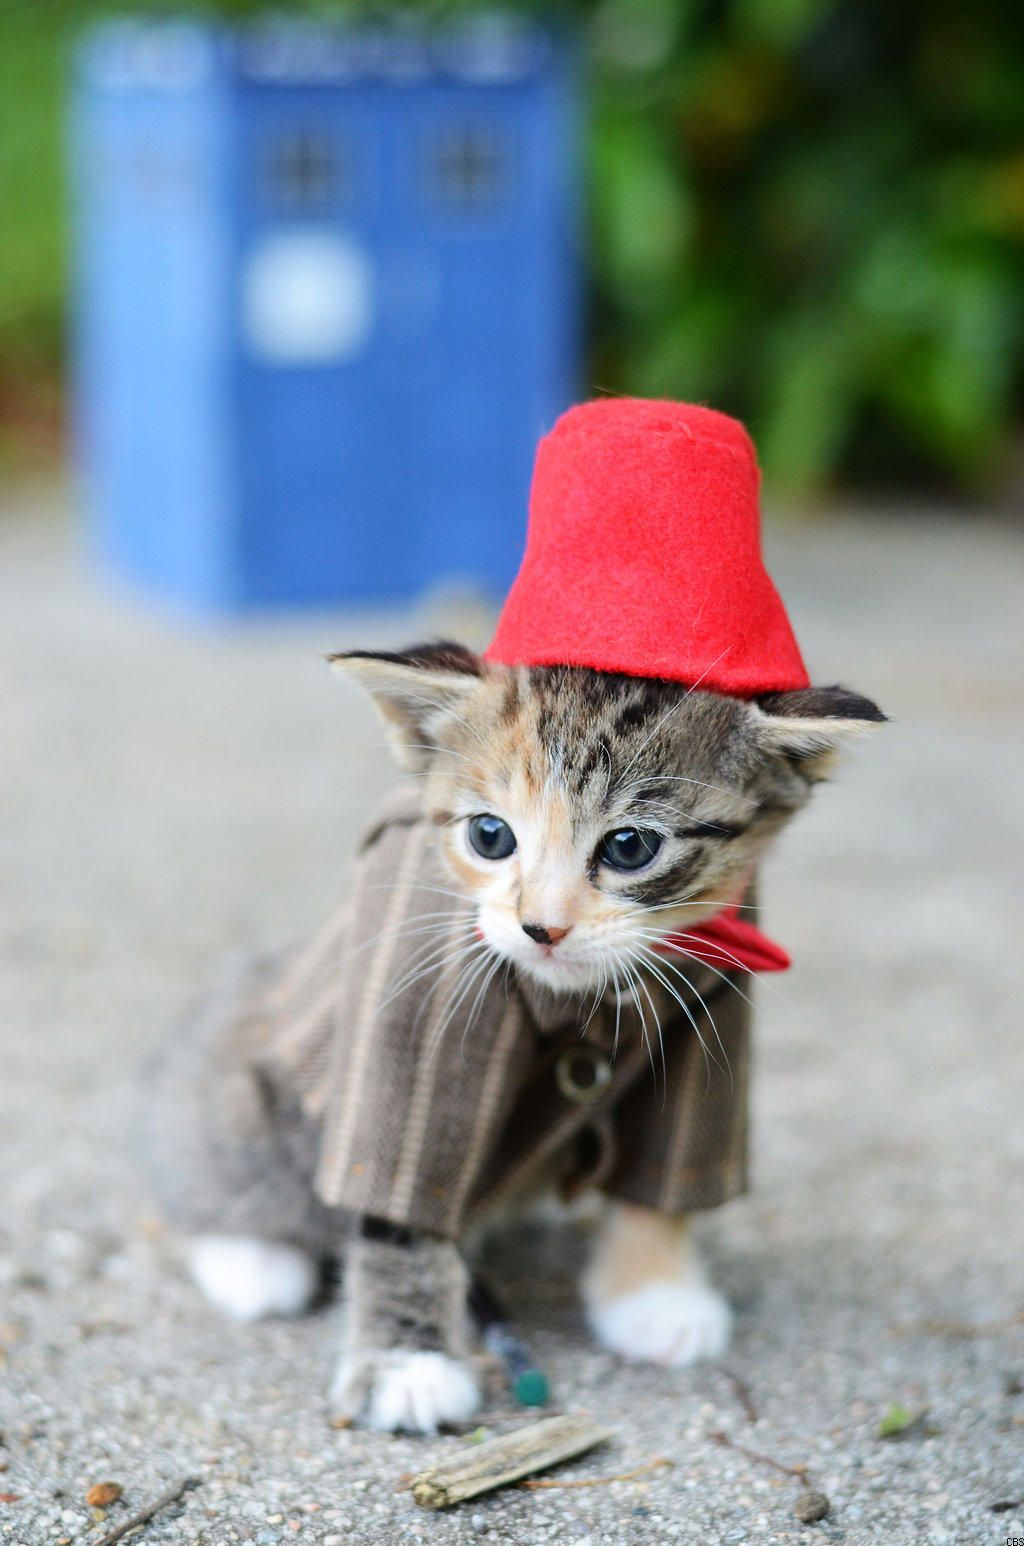 Kitten Cosplay Star Wars Doctor Who Game Of Thrones Kittens In Costumes Kittens Cats